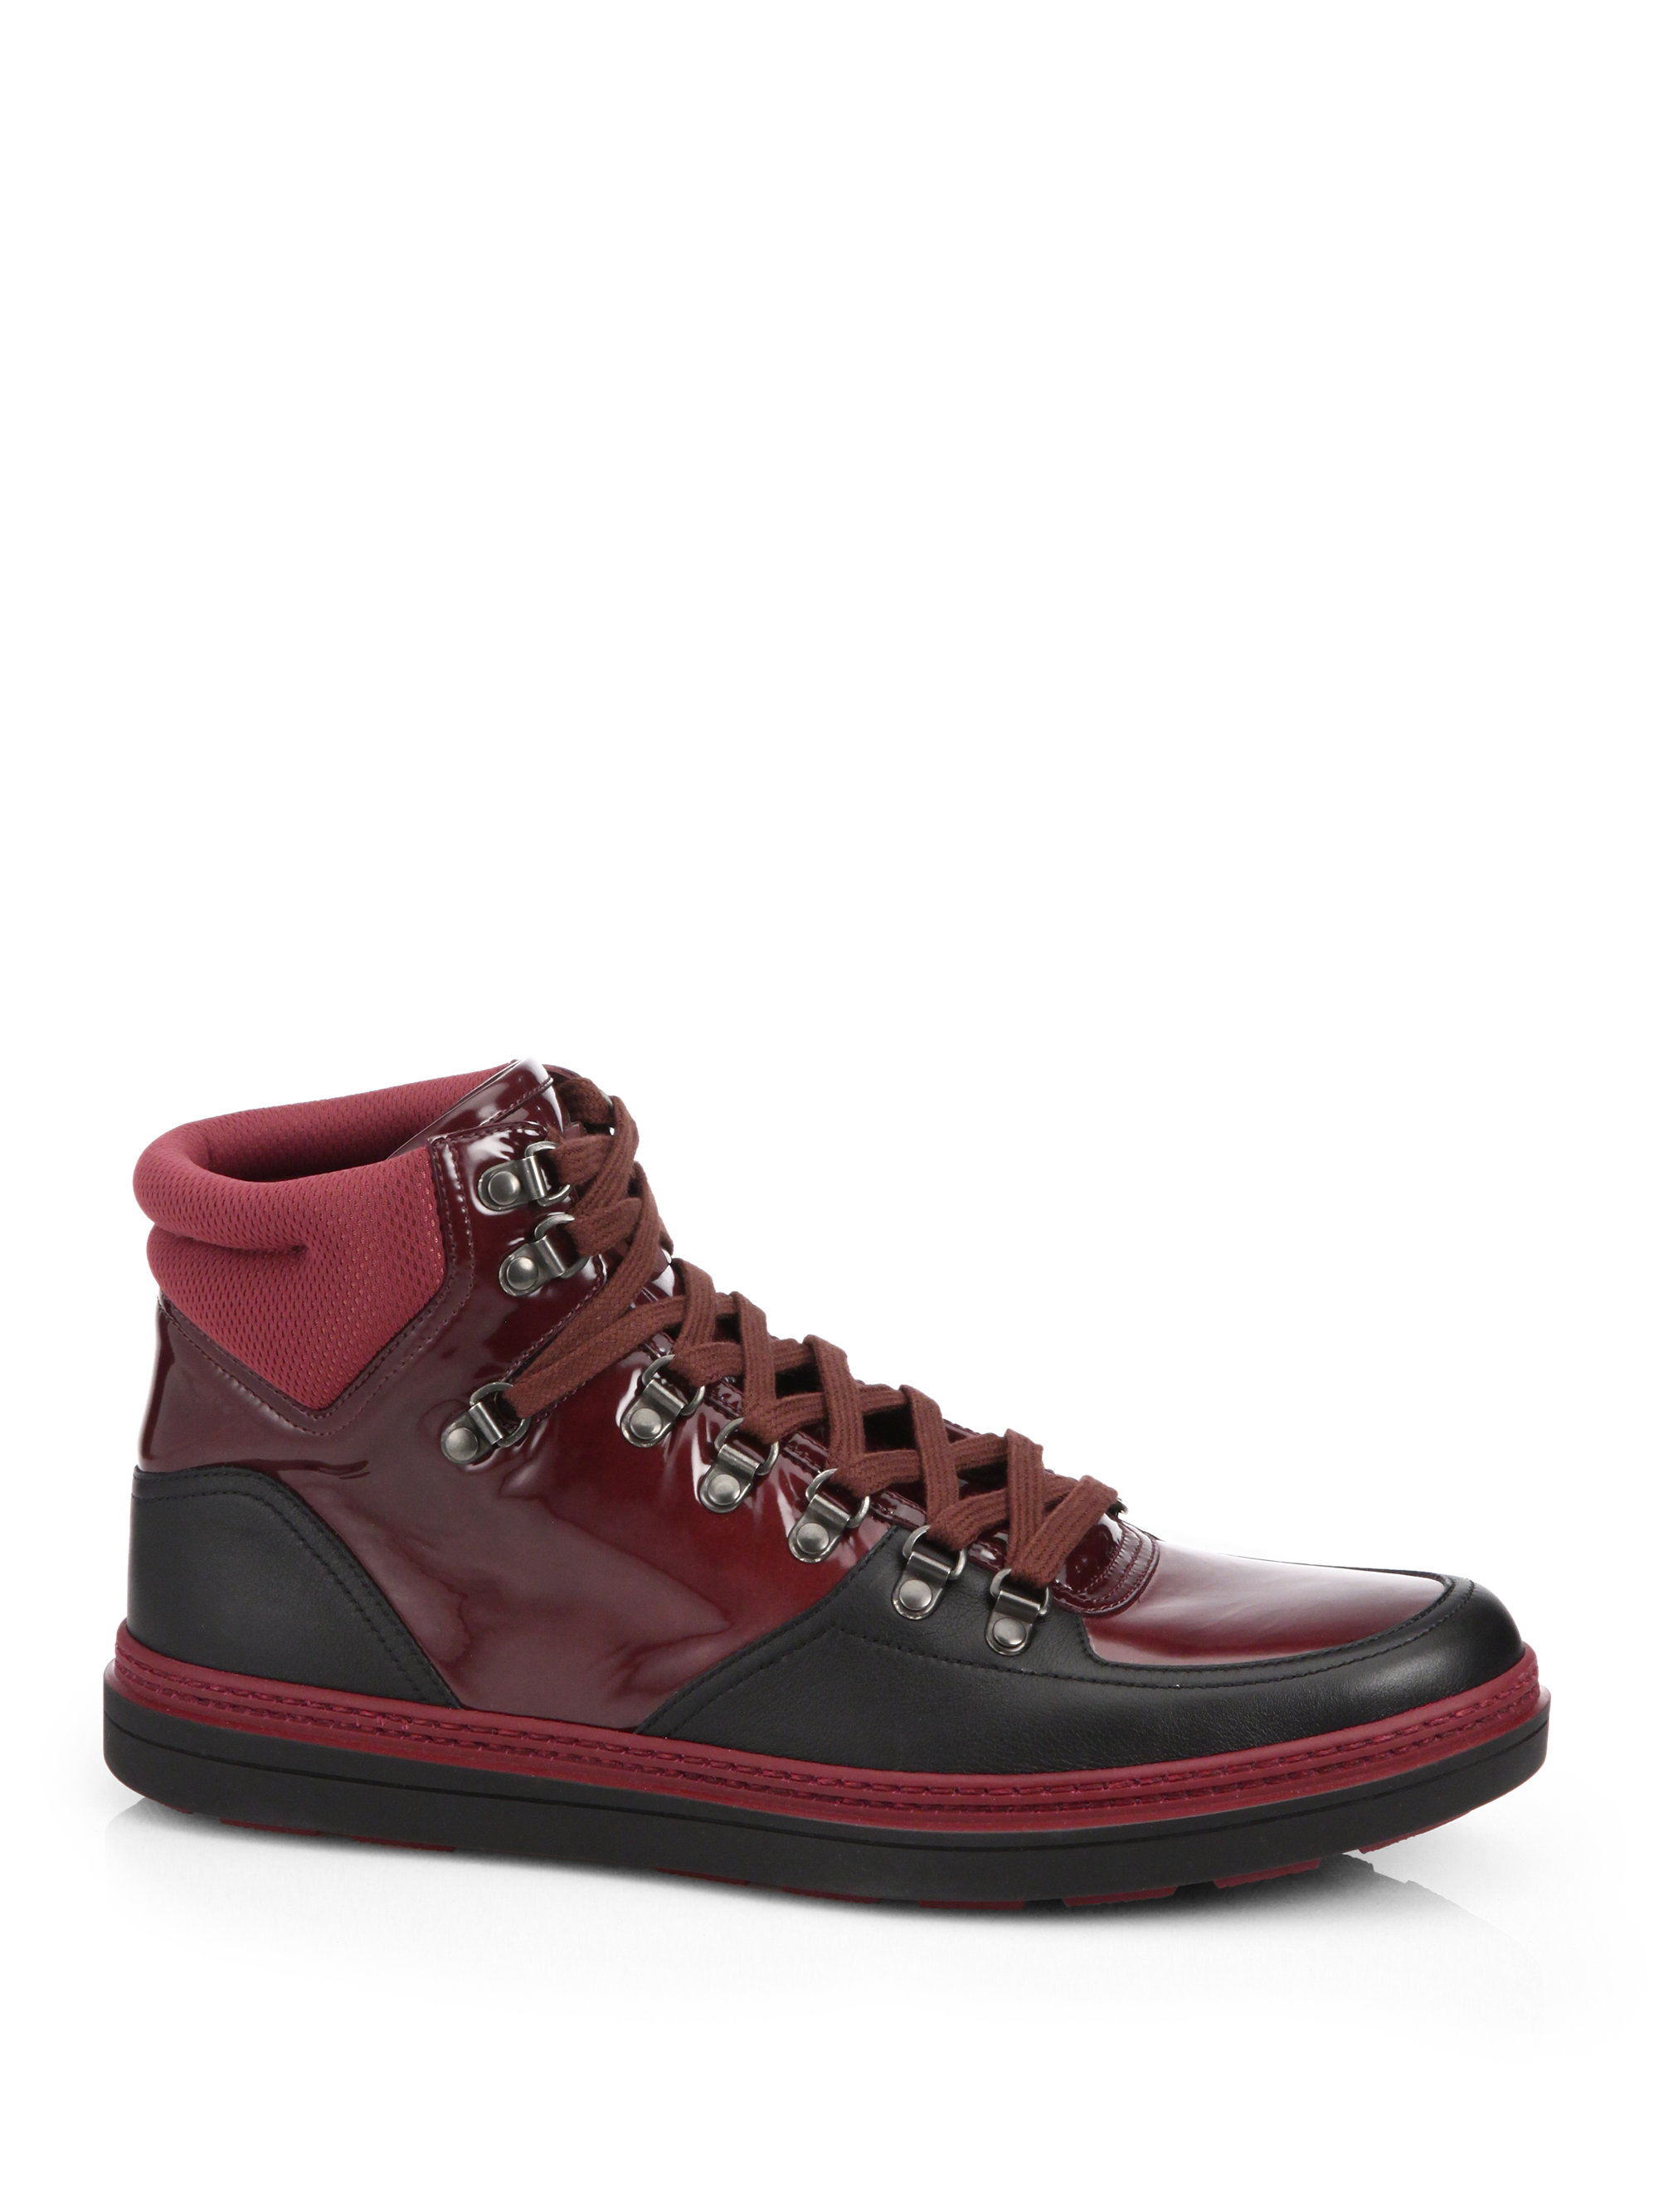 Lyst Gucci Contrast Combo High Top Sneakers In Black For Men